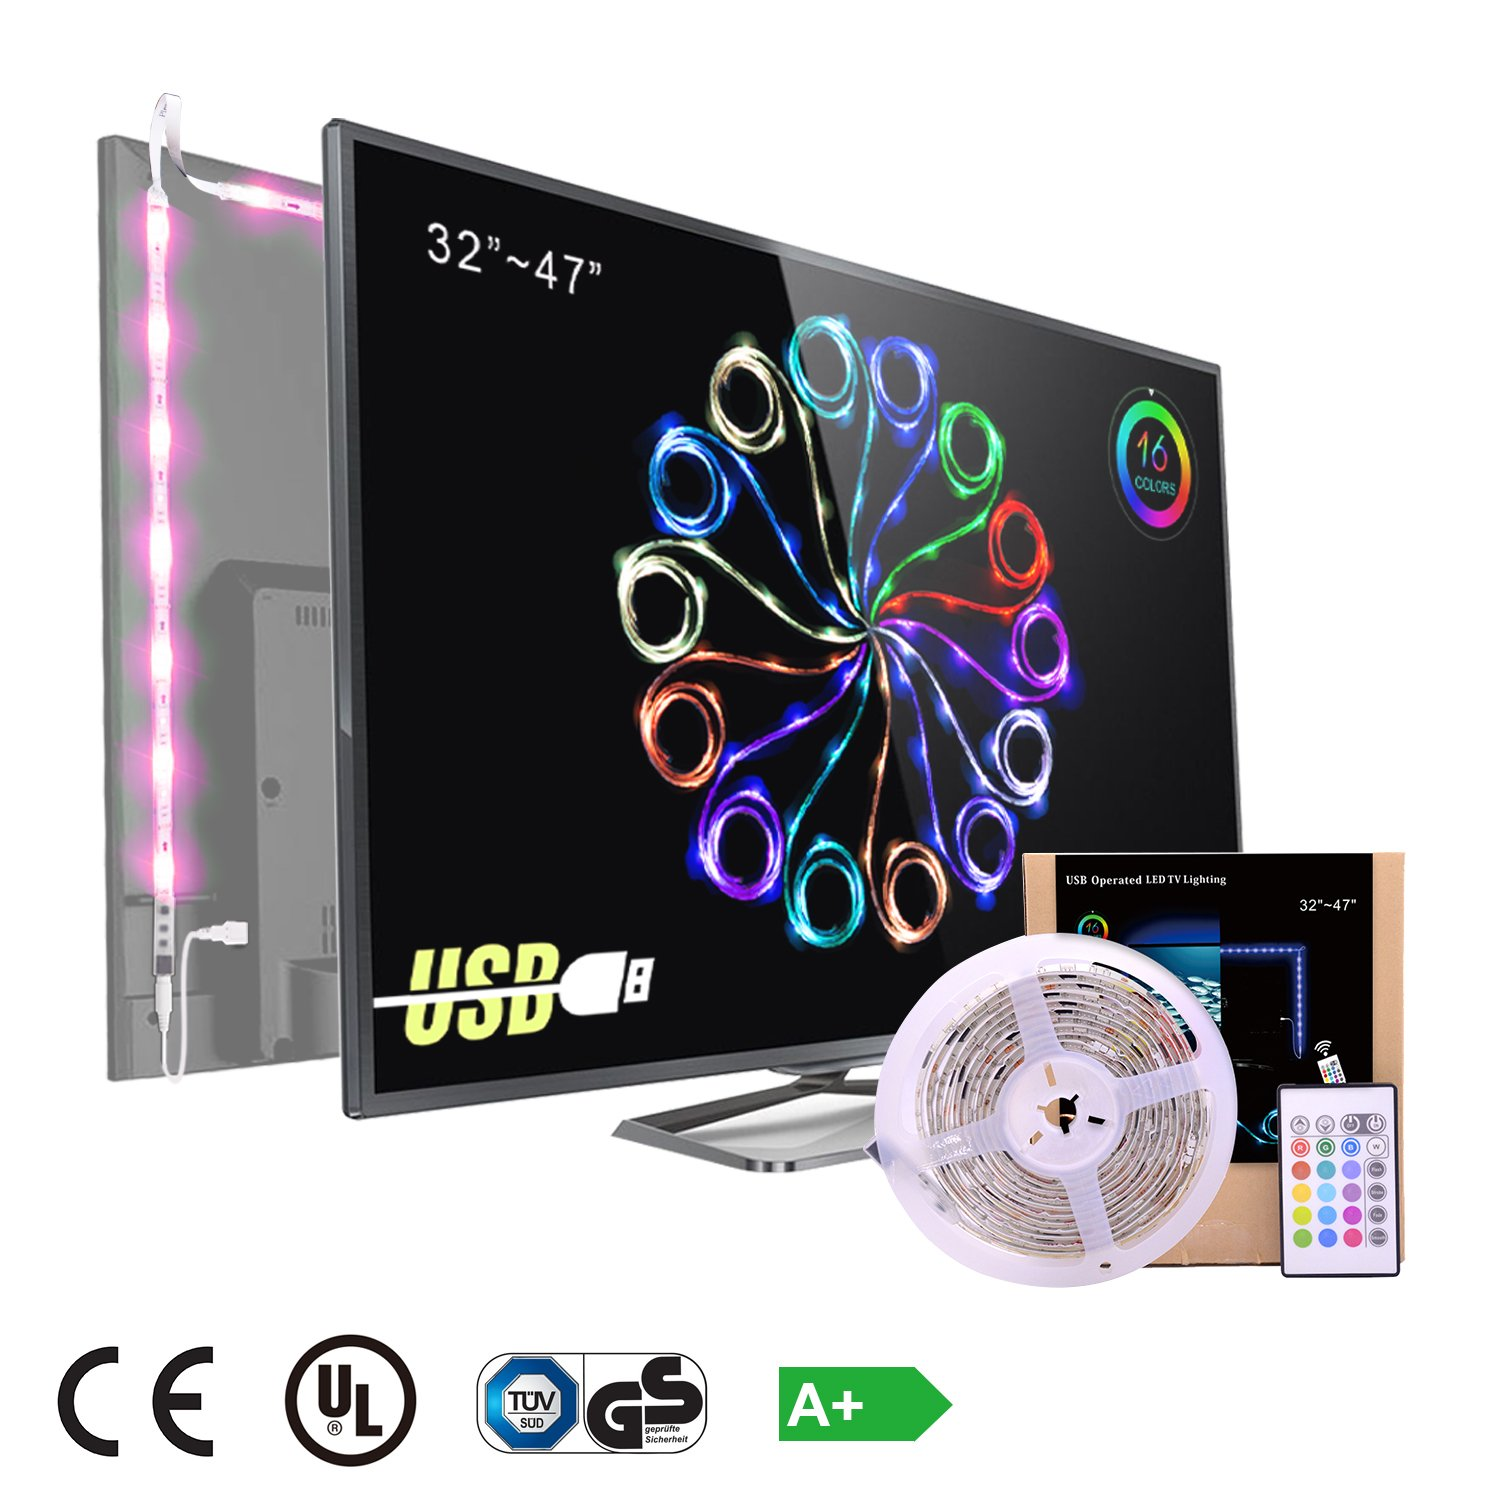 Pangtong Villa 5050 Led light Strip TV Backlight for 32 to 47 Inch,Pack of 4 Pre Cut [Energy Class A+]